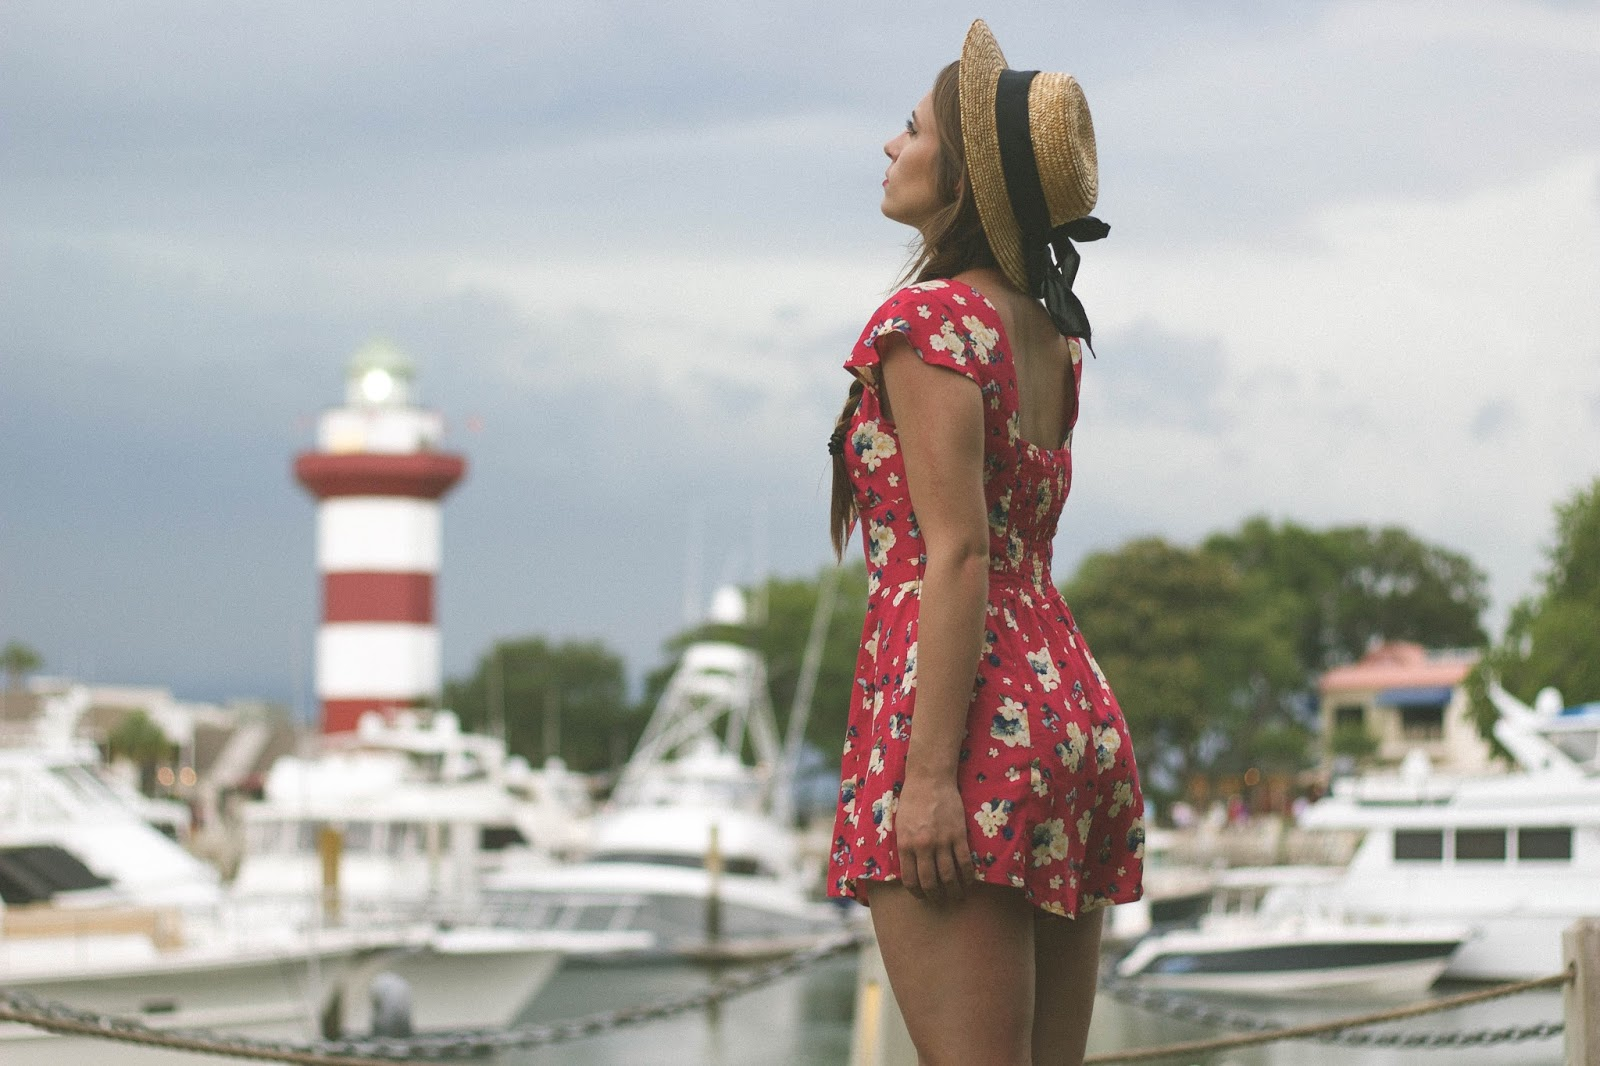 Vintage, retro, style, vintage style, retro style, romper, floral, boater hat, taylor swift style, summer outfit, beach outfit, beachwear retro, forever 21, classic, fashion, personal style blogger, fashion blogger, movie blogger, film blogger, girly,